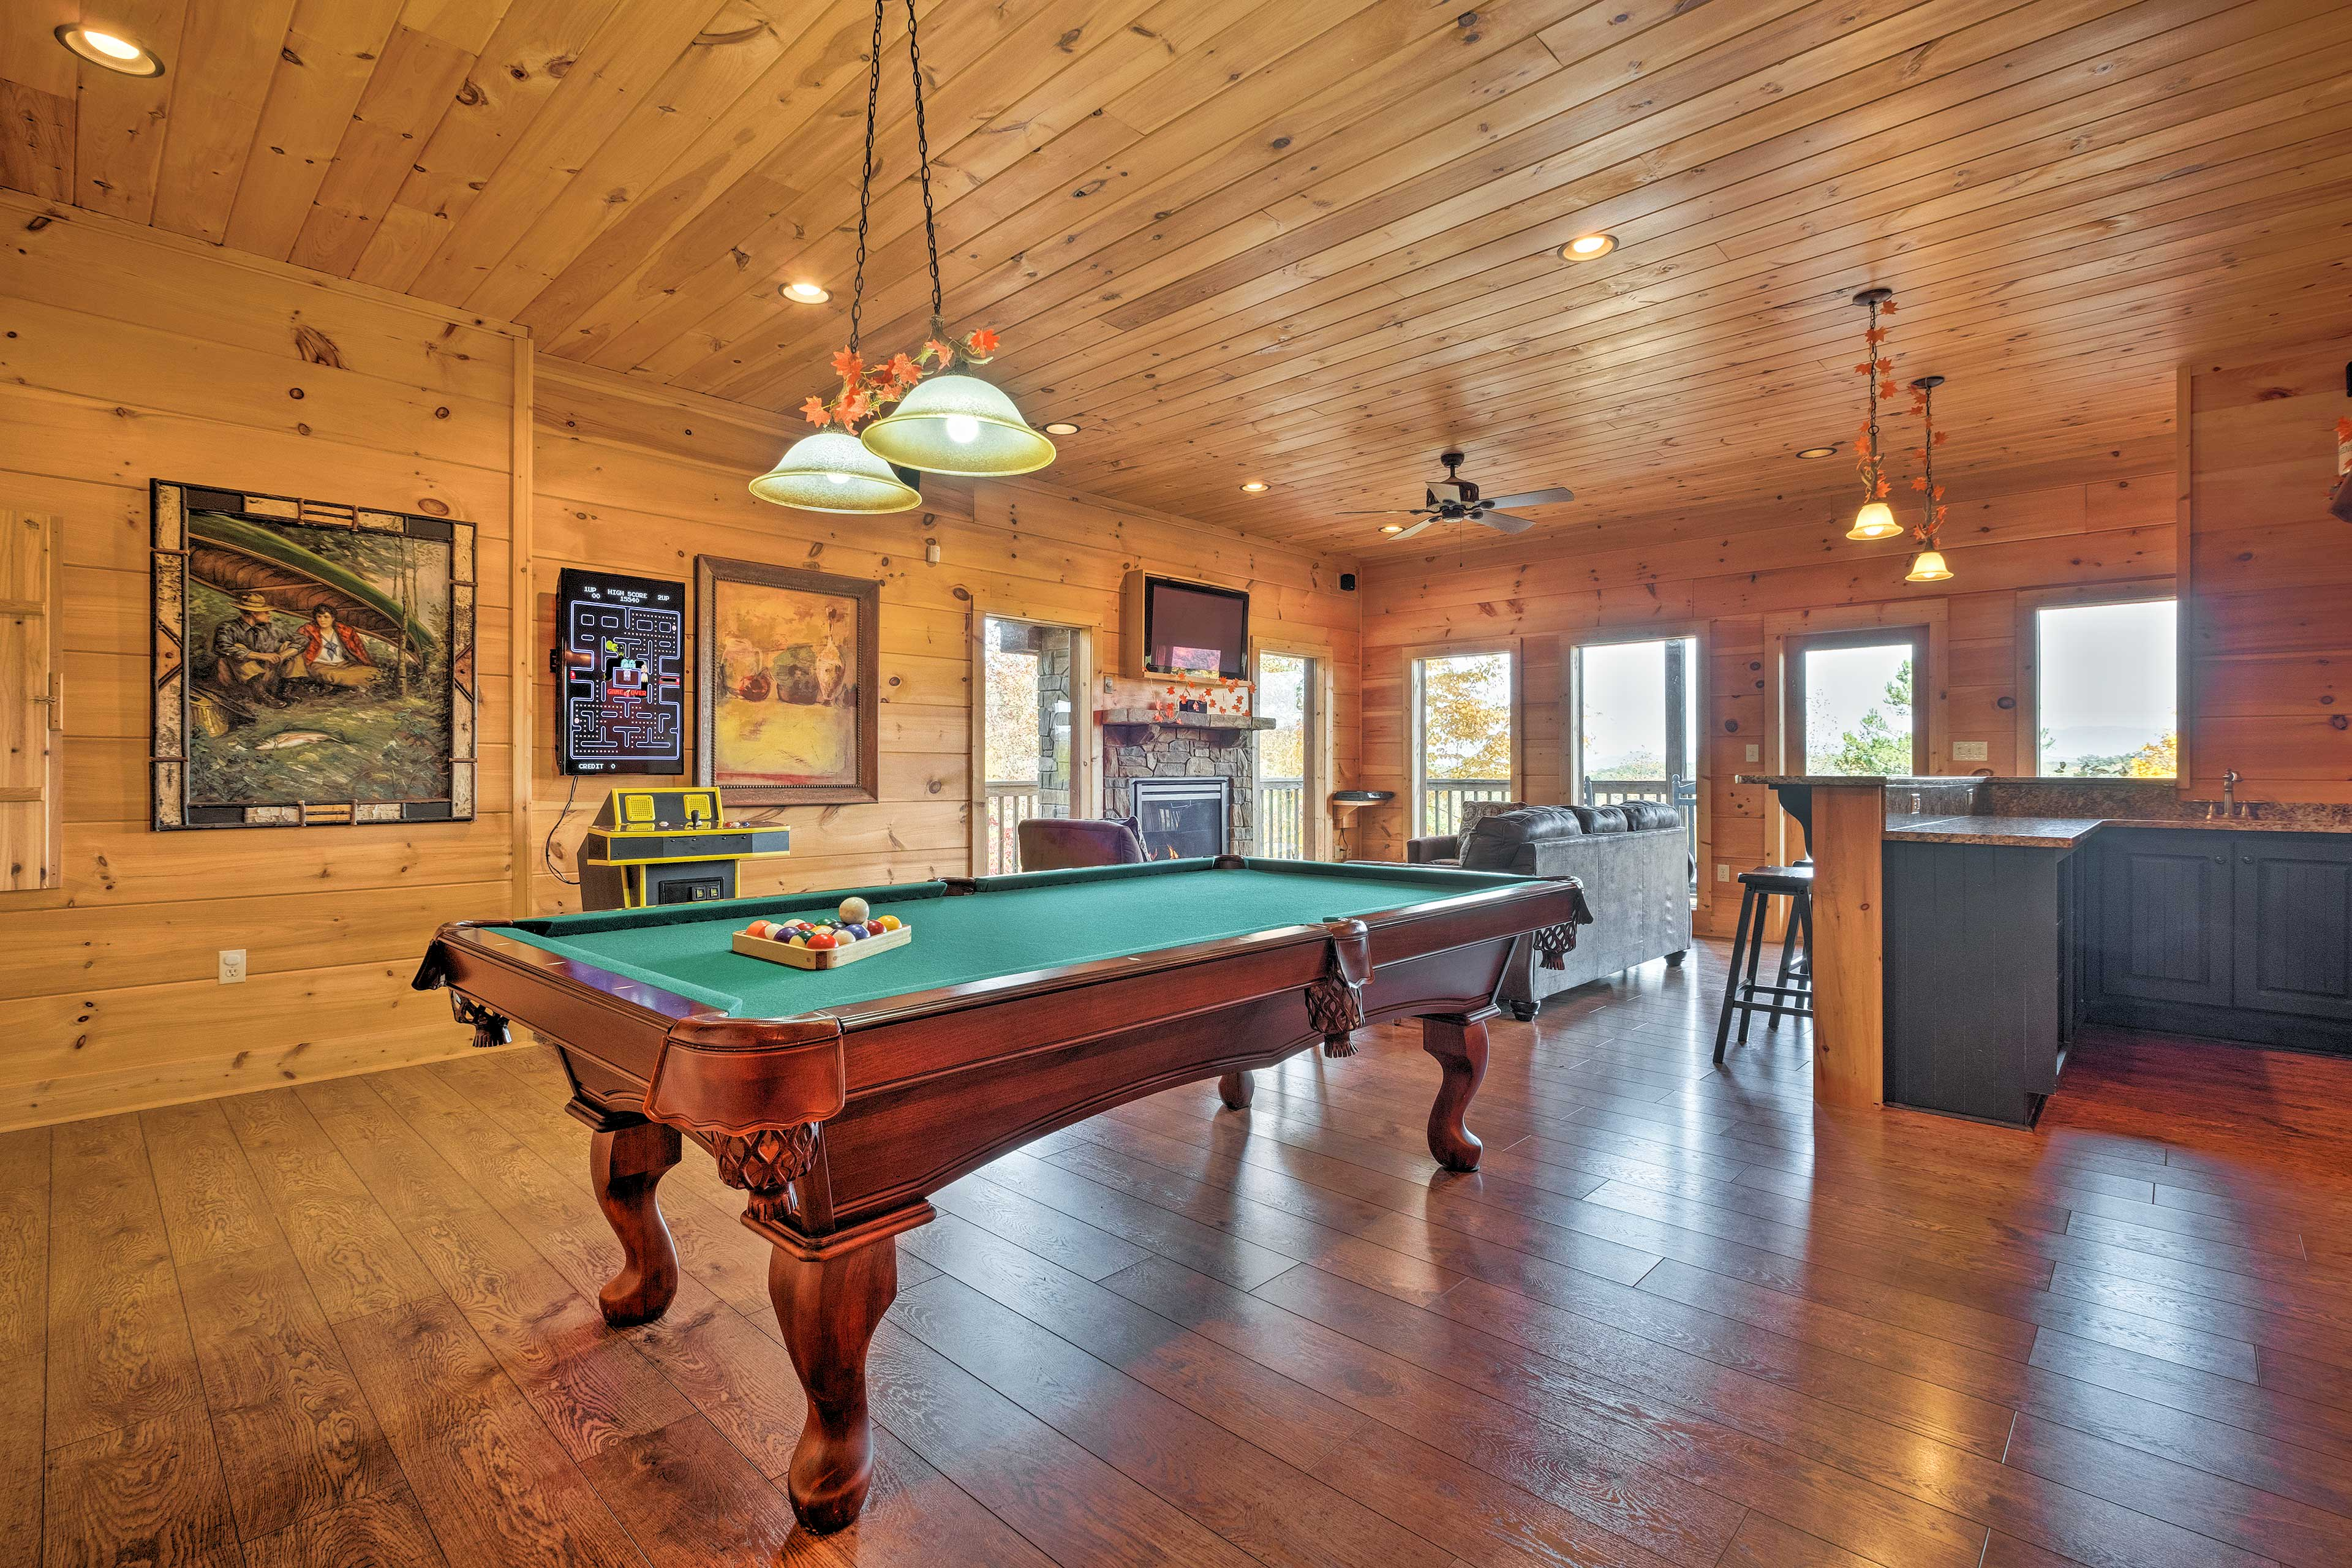 The game room offers a pool table, 60-game multicade arcade, fireplace and TV.